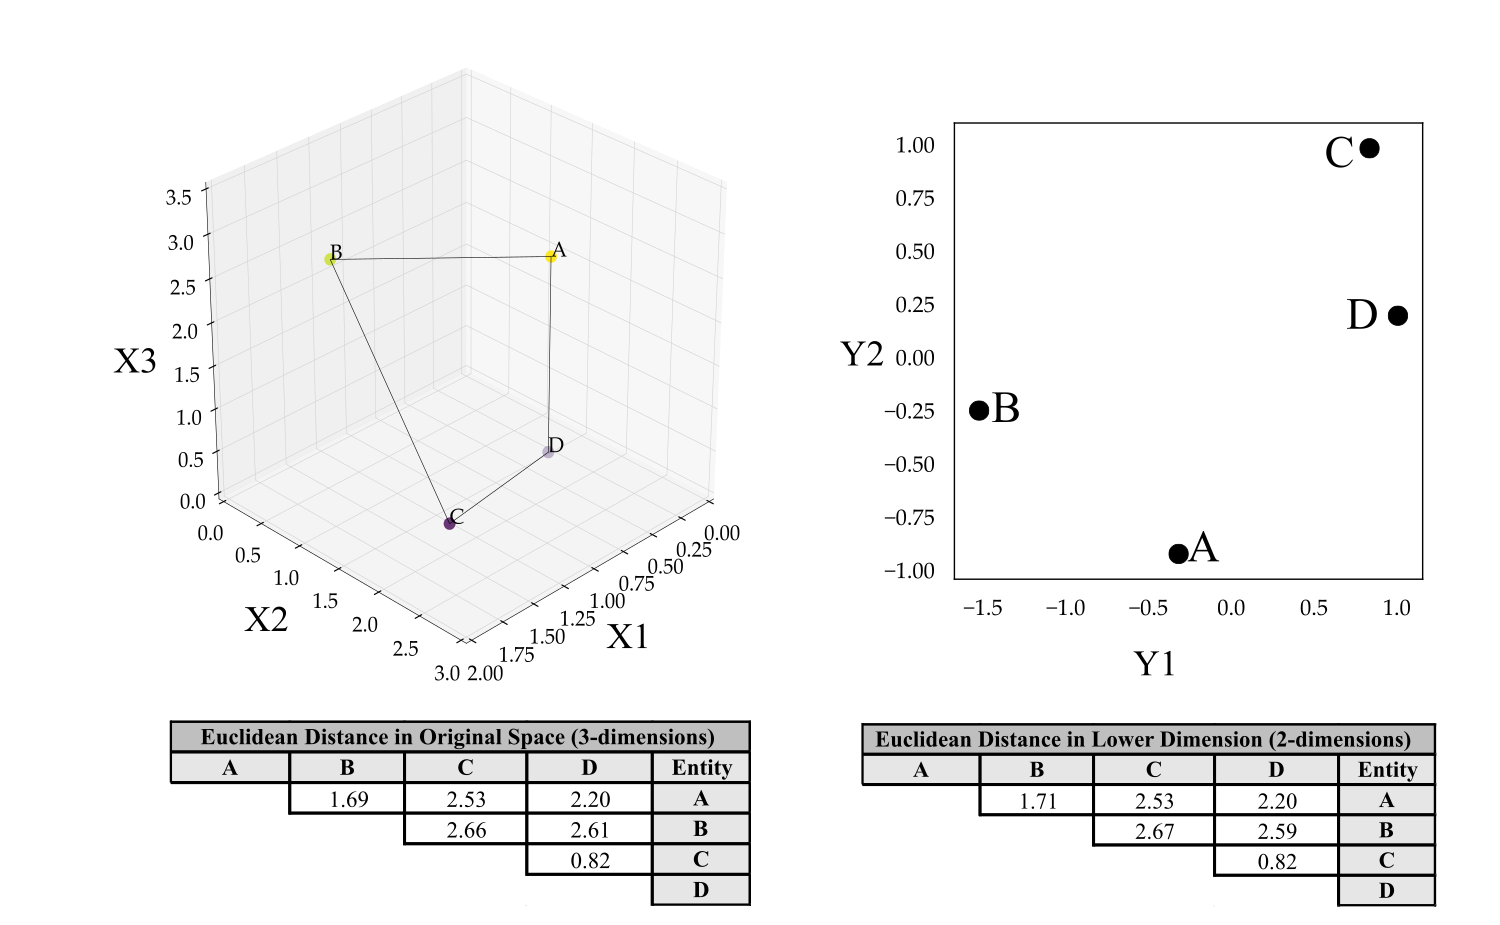 Left: Original 3-dimensional space with 4 points defined by 3 variables (X1,X2,X3) and input distance matrix. Right: Embedding using MDS to 2 dimensions (Y1,Y2) with resulting distance matrix showing a slight distortion in the distances